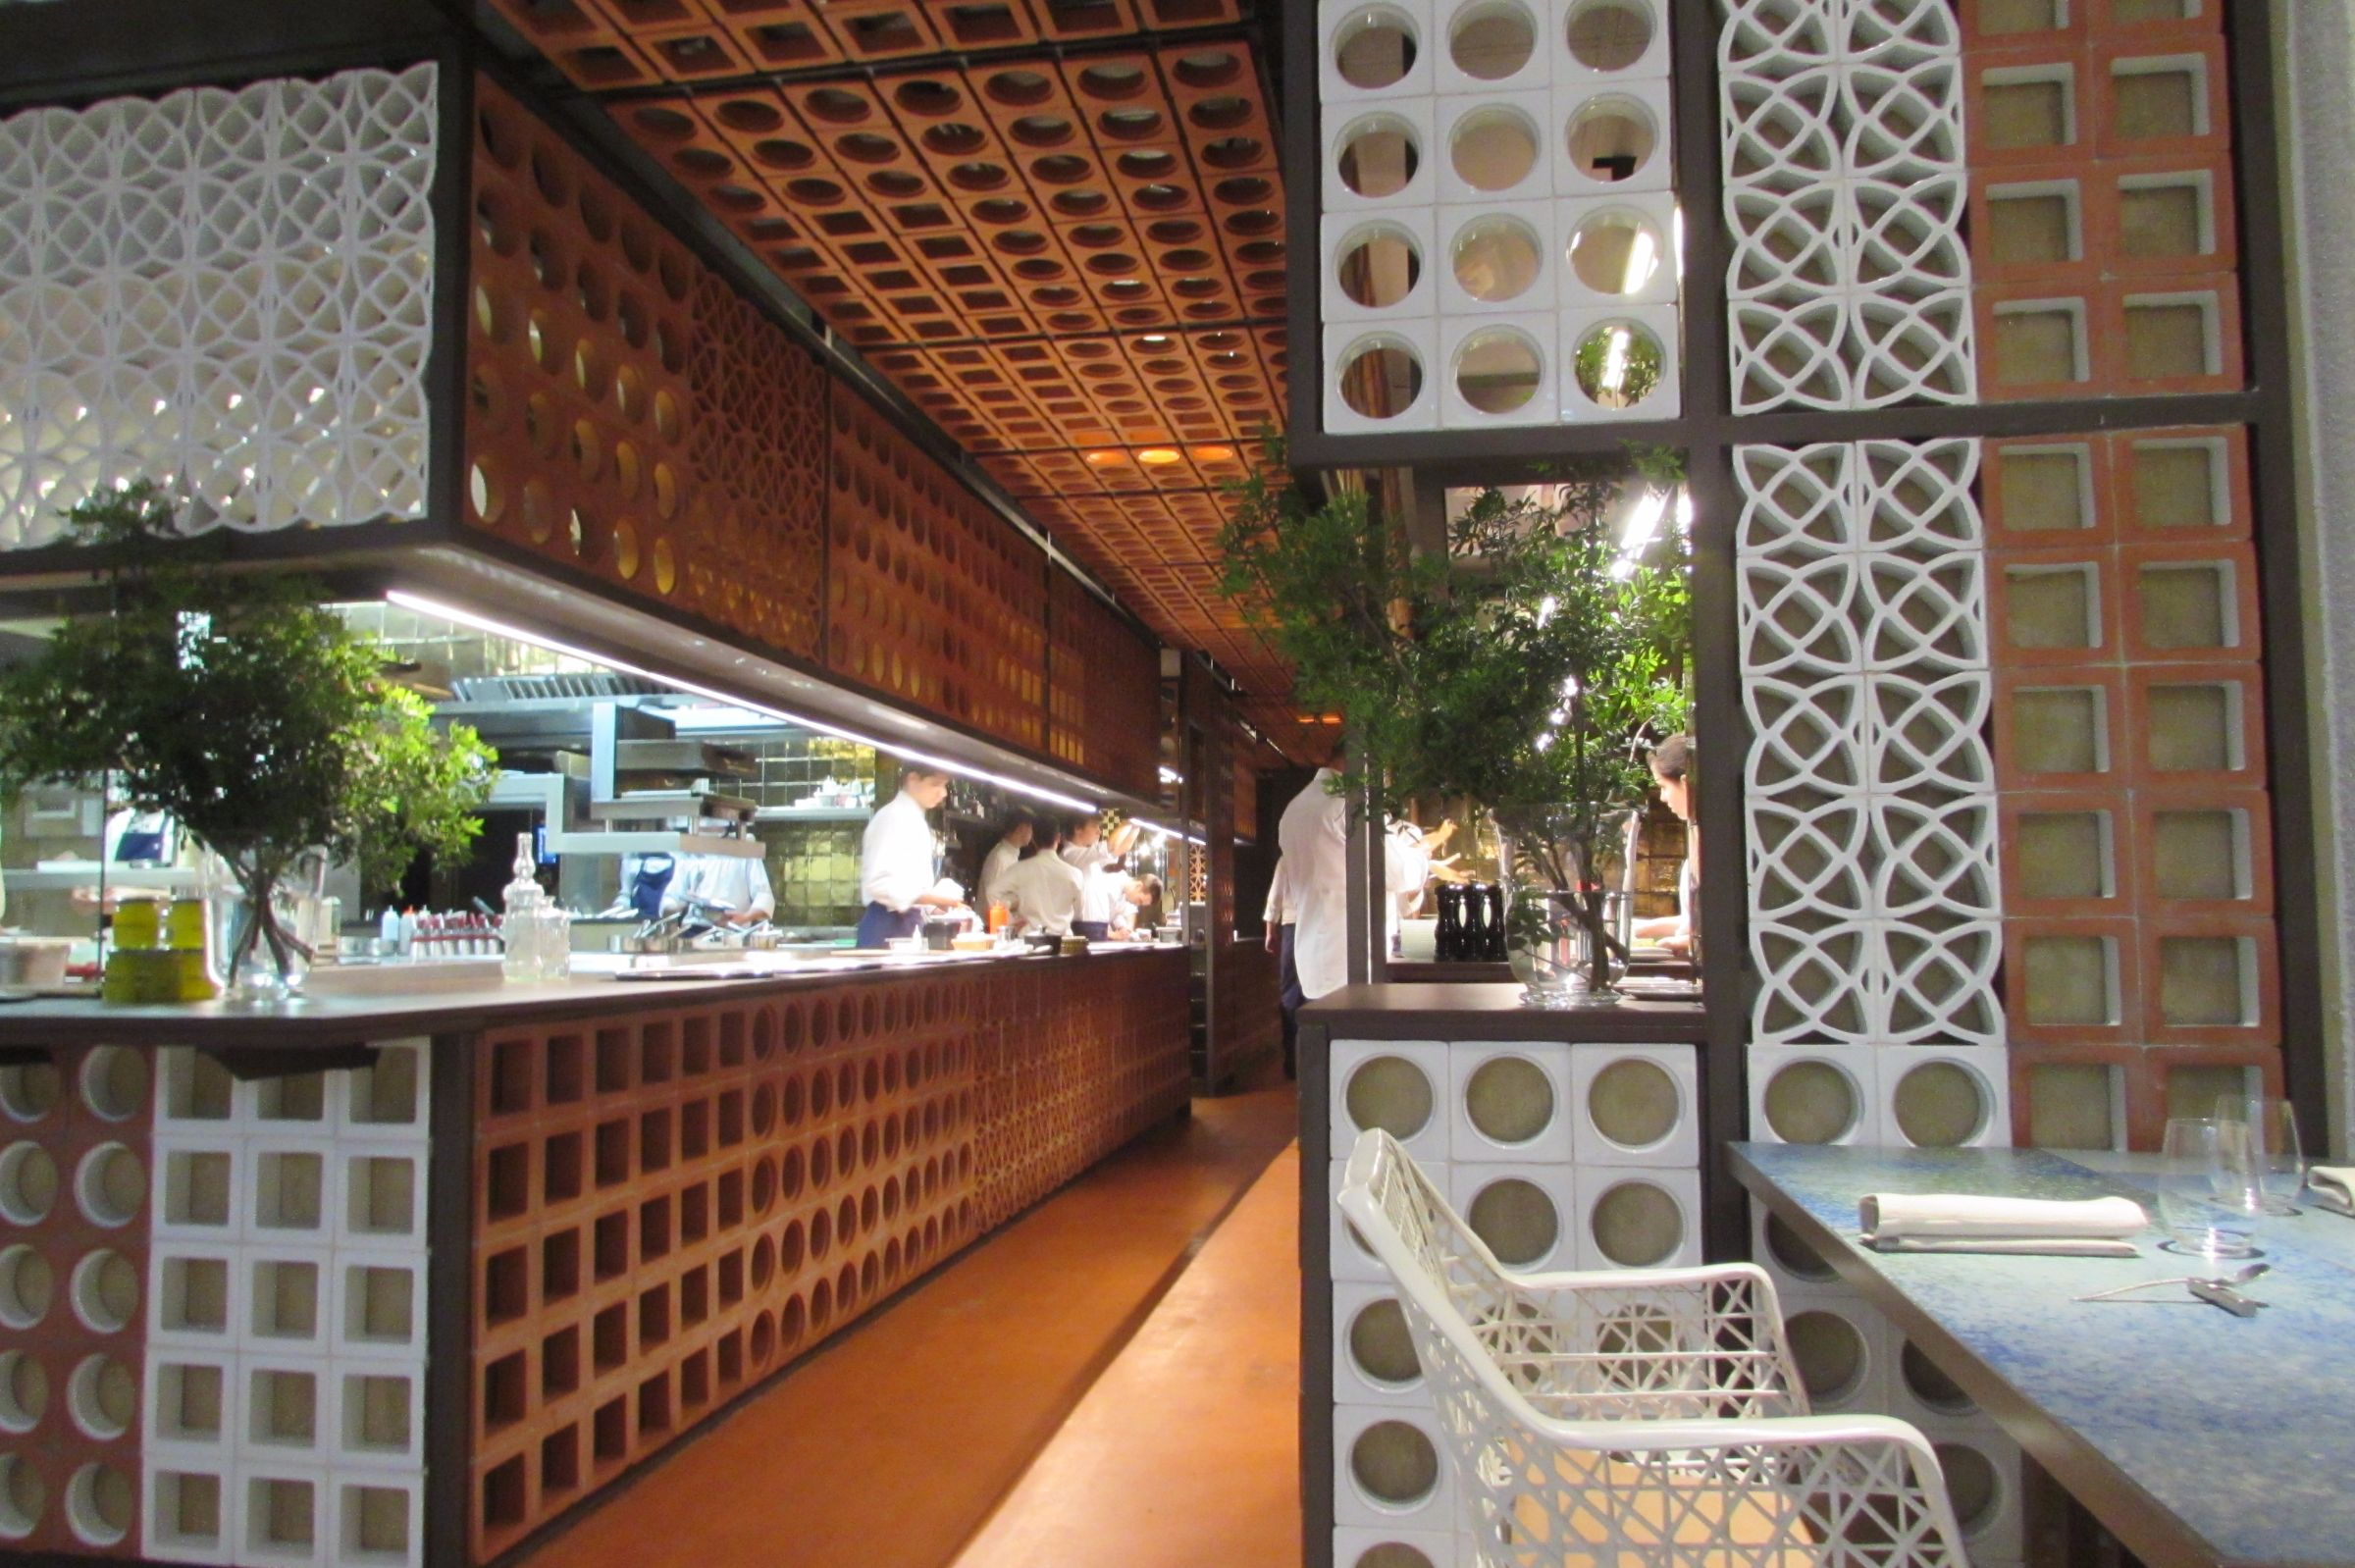 The decor is inspired by the Ninot food market located across the street from the restaurant.